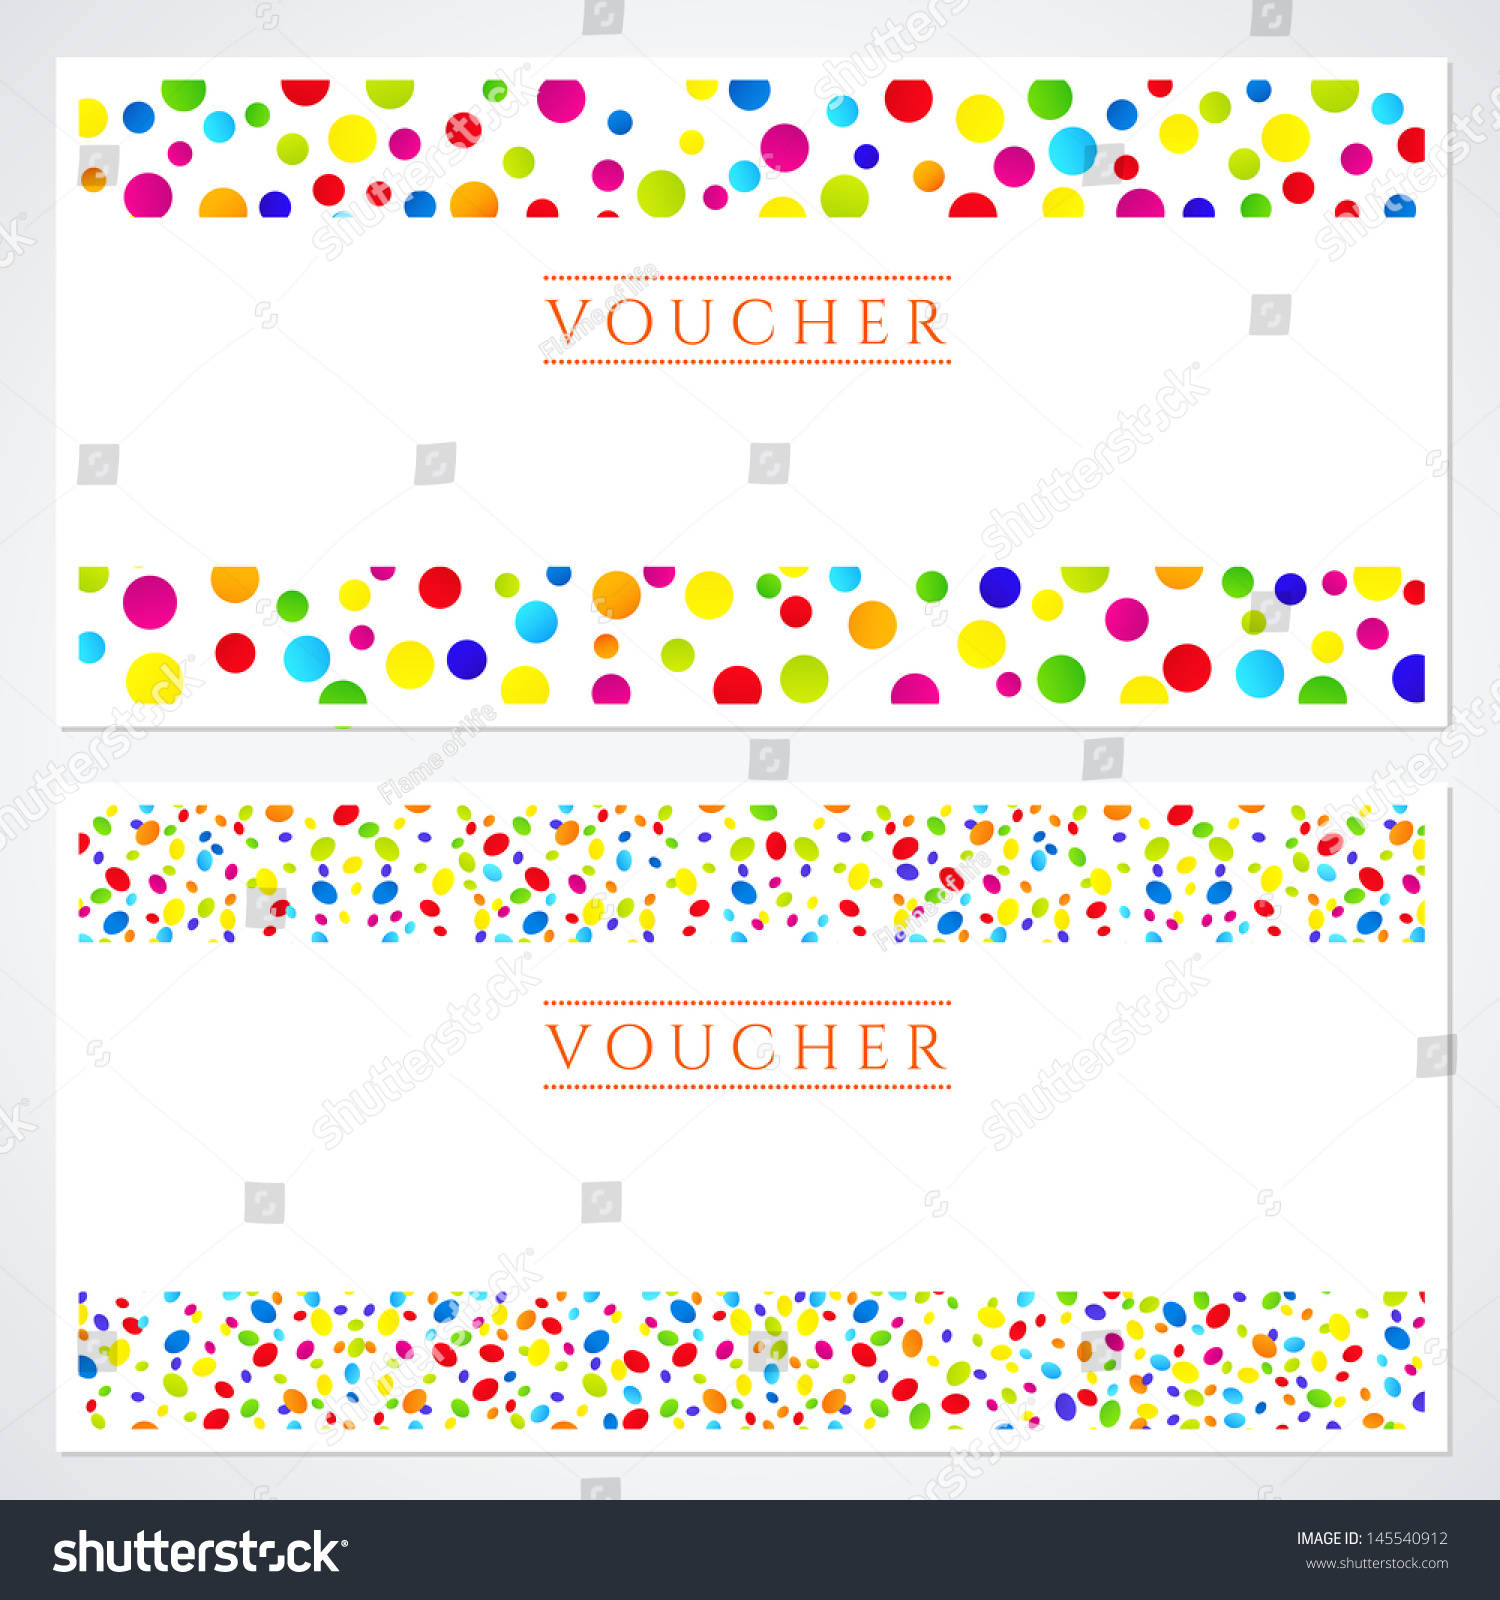 Voucher gift certificate template colorful bright stock voucher gift certificate template with colorful bright rainbow circles xflitez Choice Image